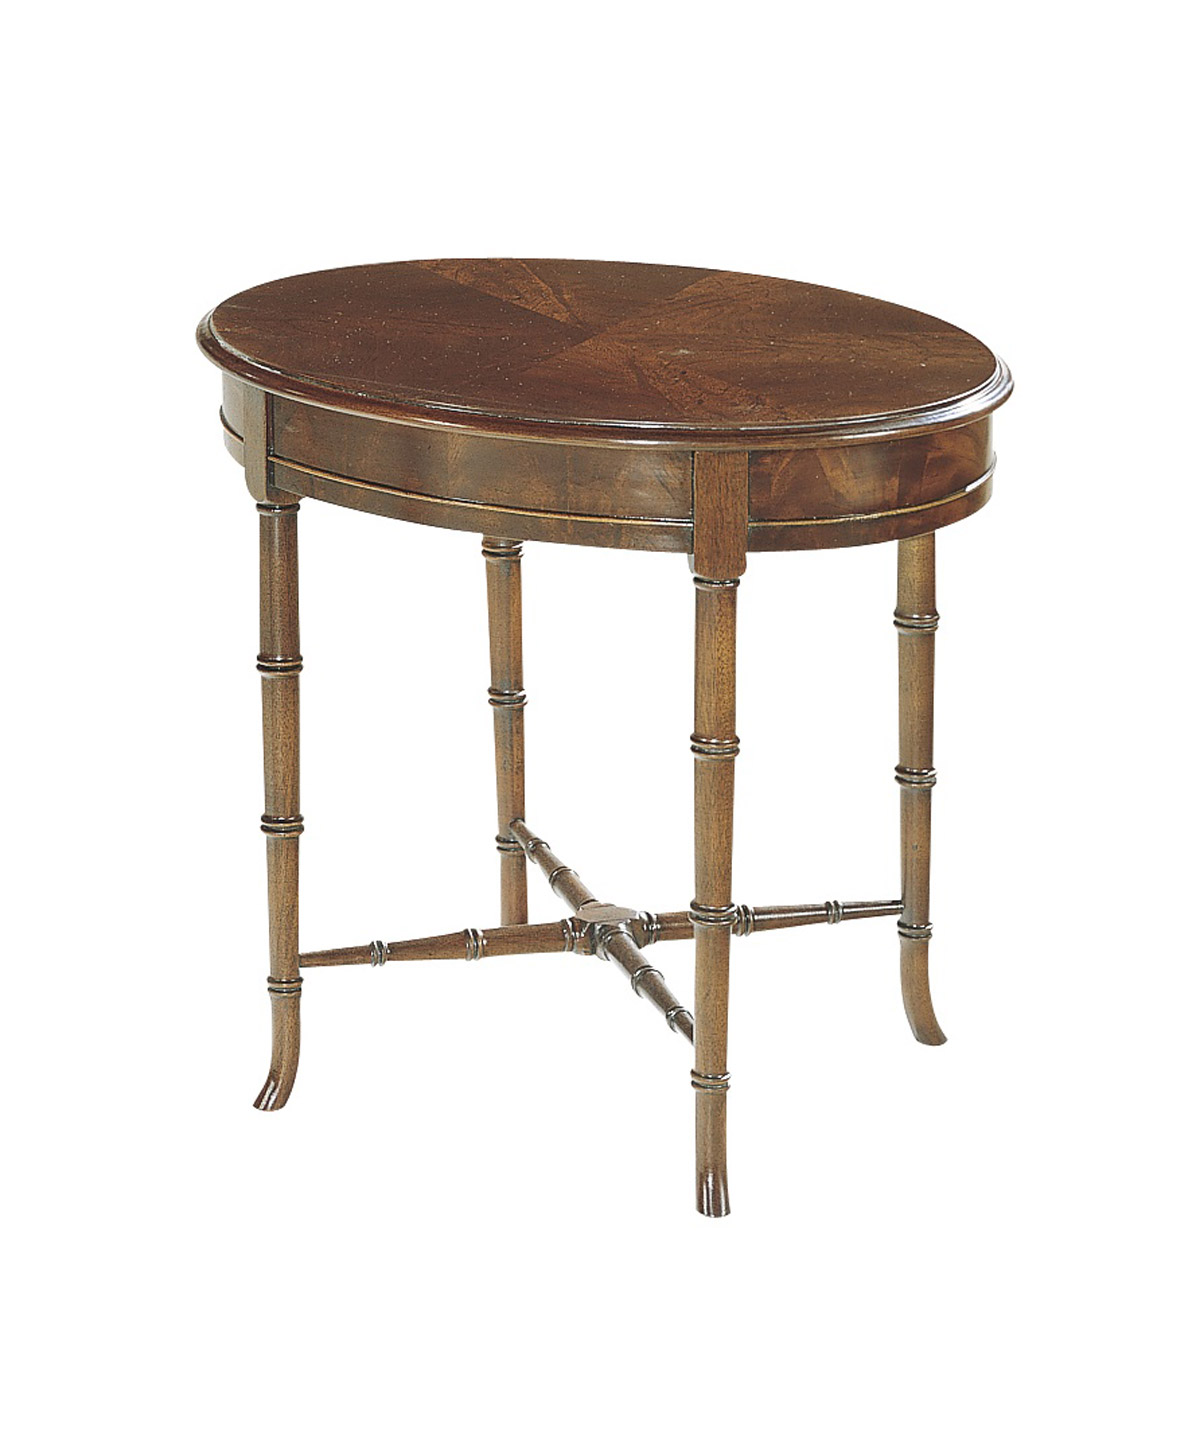 Oval Regency Accessory Table